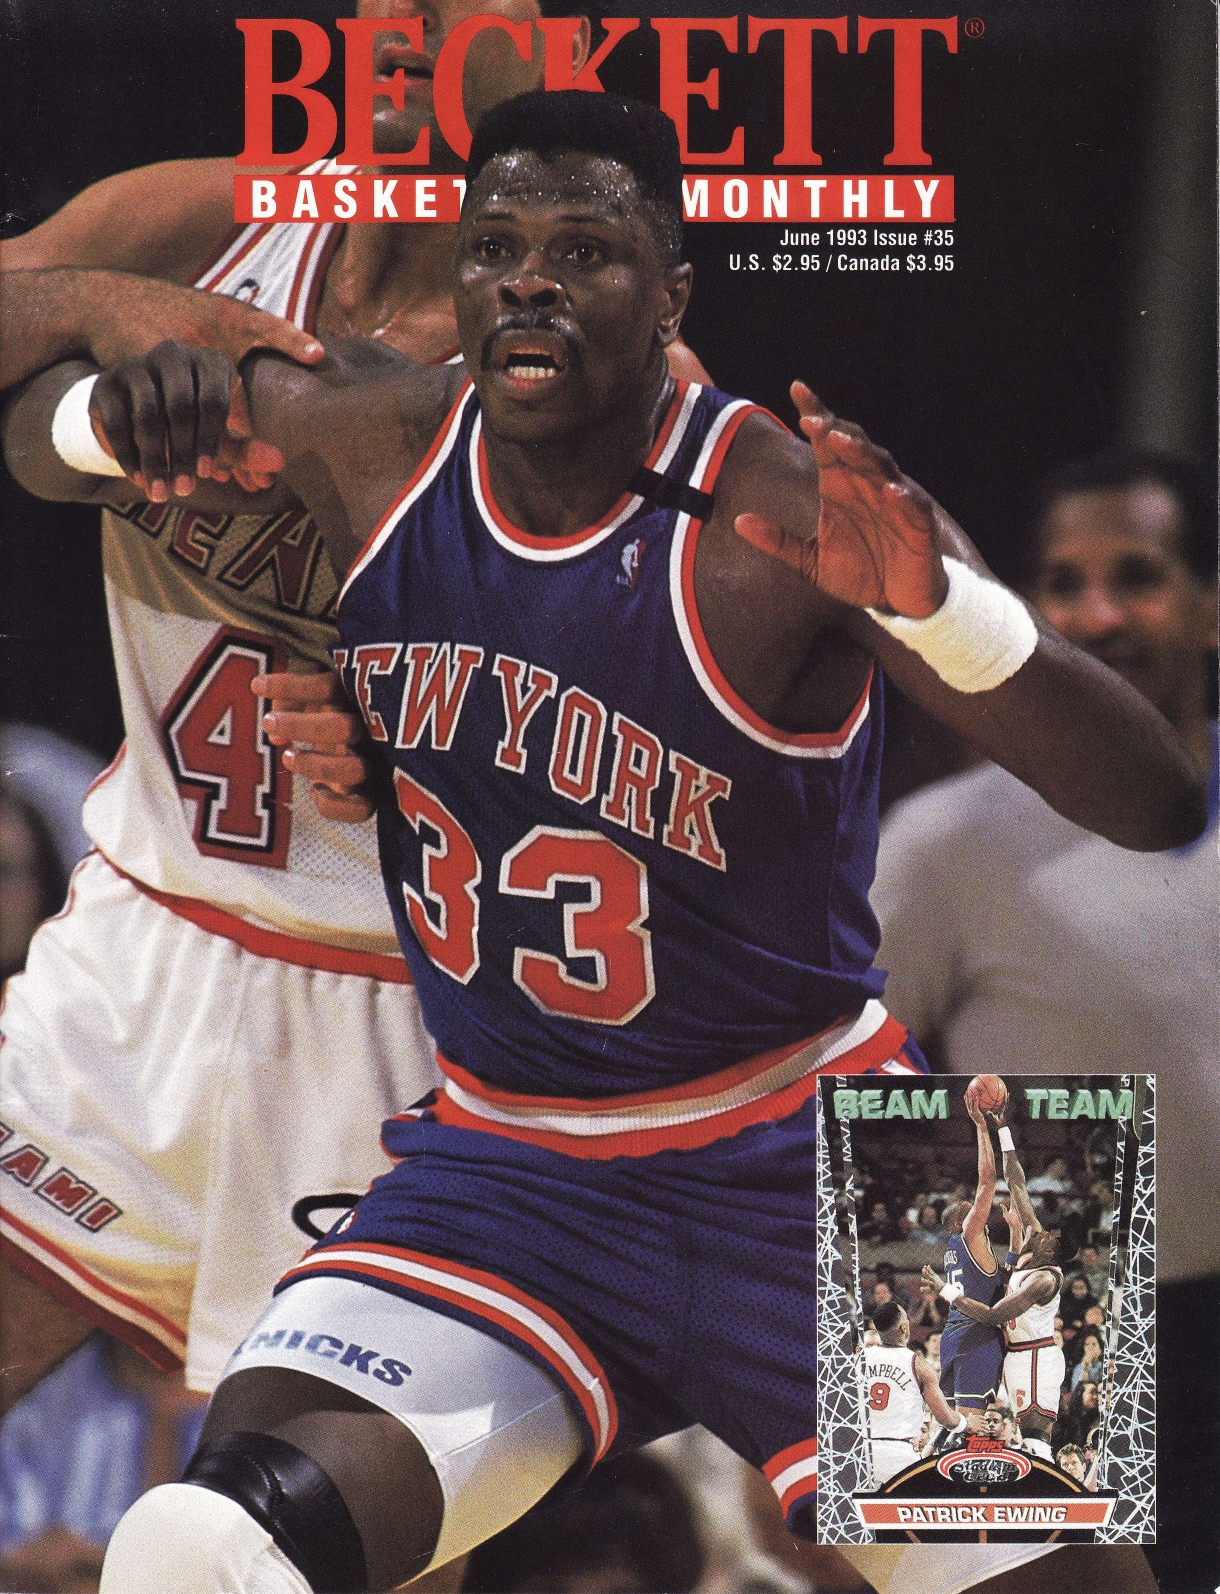 Patrick Ewing on the cover of Beckett Basketball